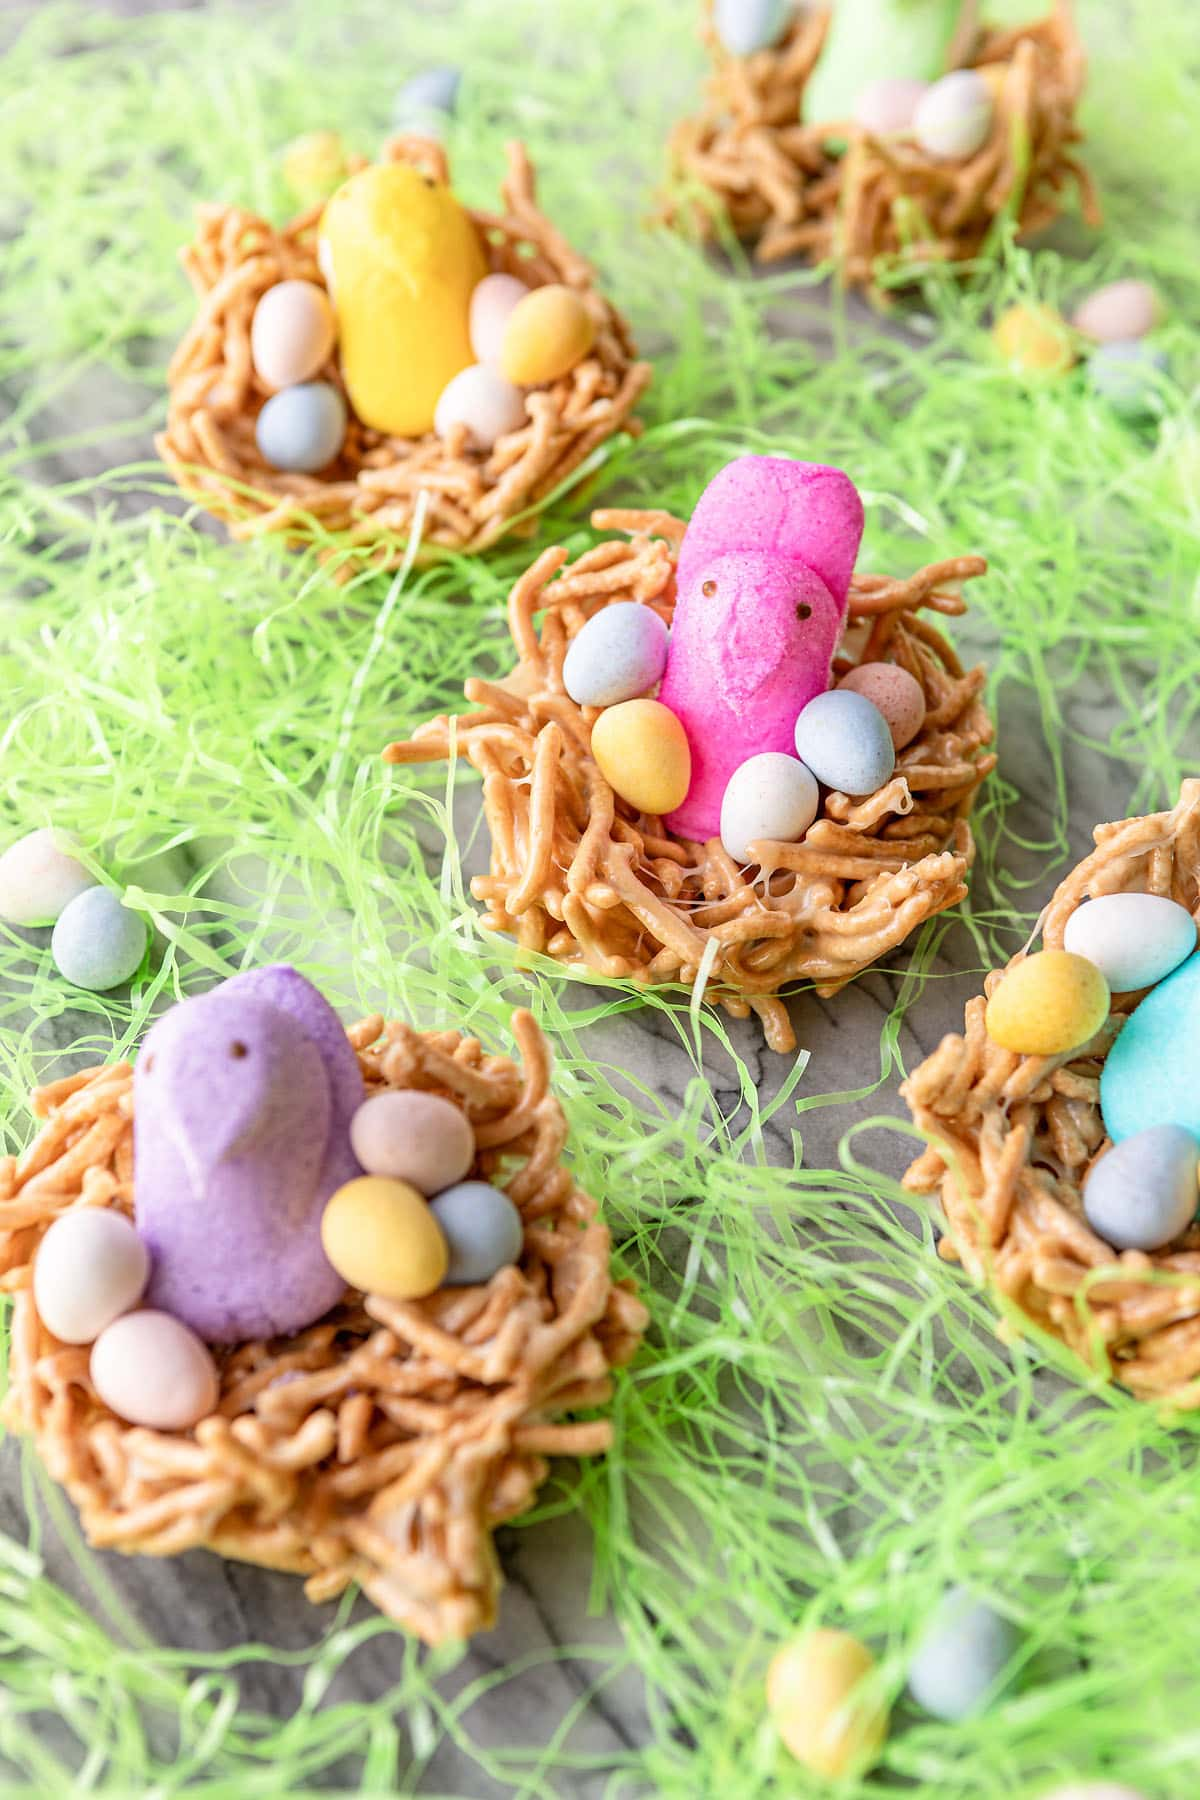 edible bird nests for easter with peeps chicks and candy coated eggs